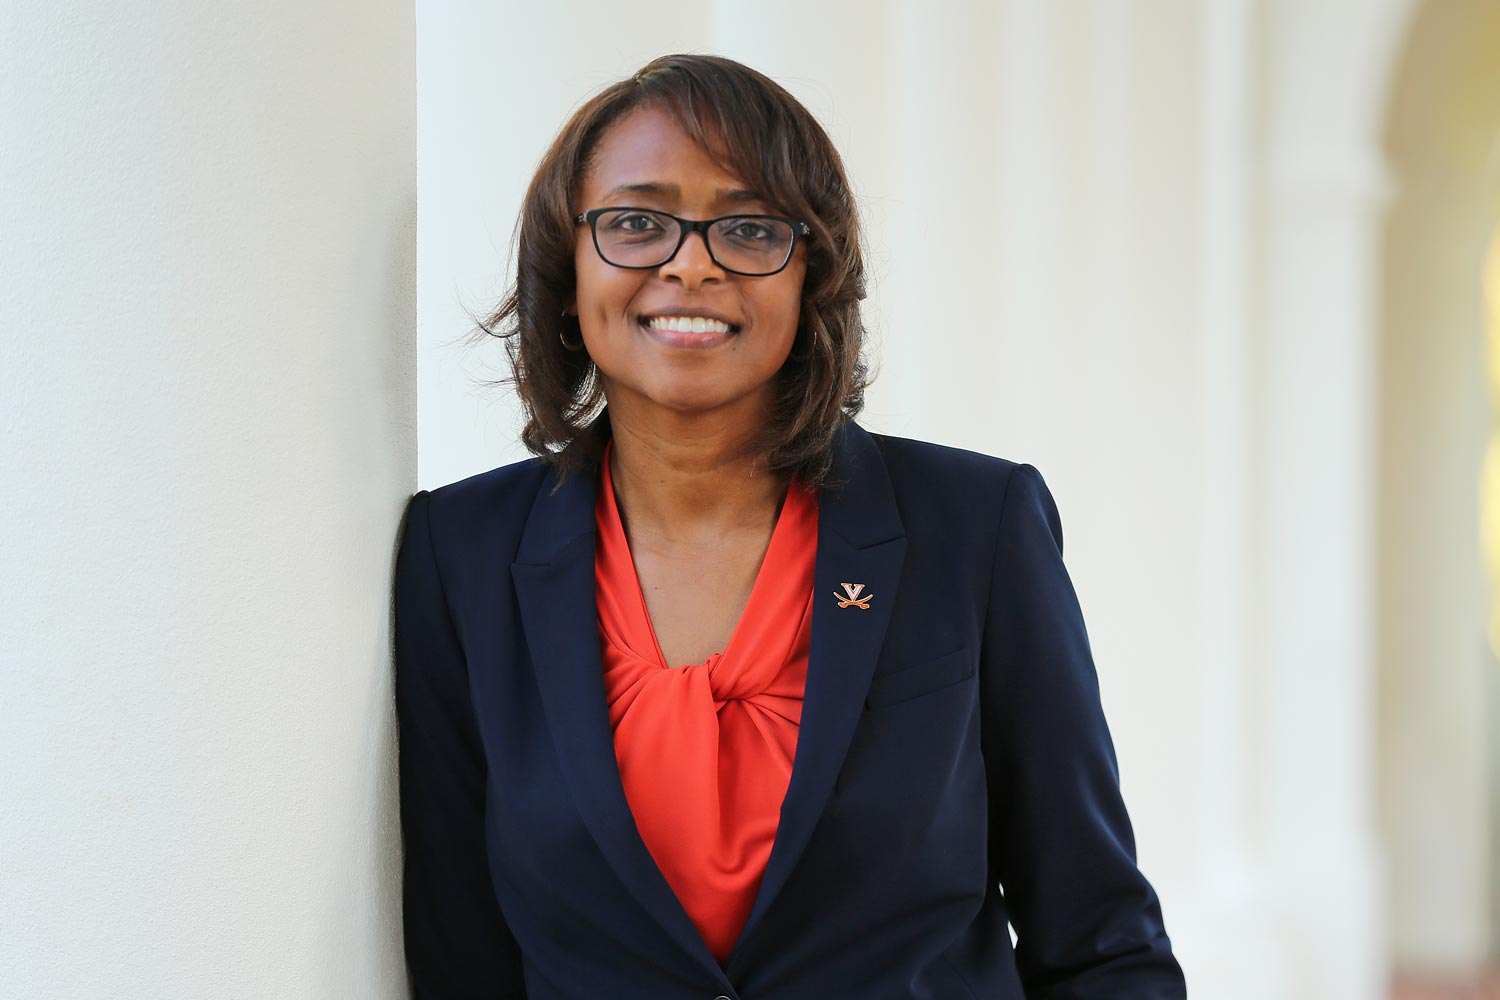 Carla Williams is familiar with college athletics from many angles: as a student-athlete, coach and administrator.